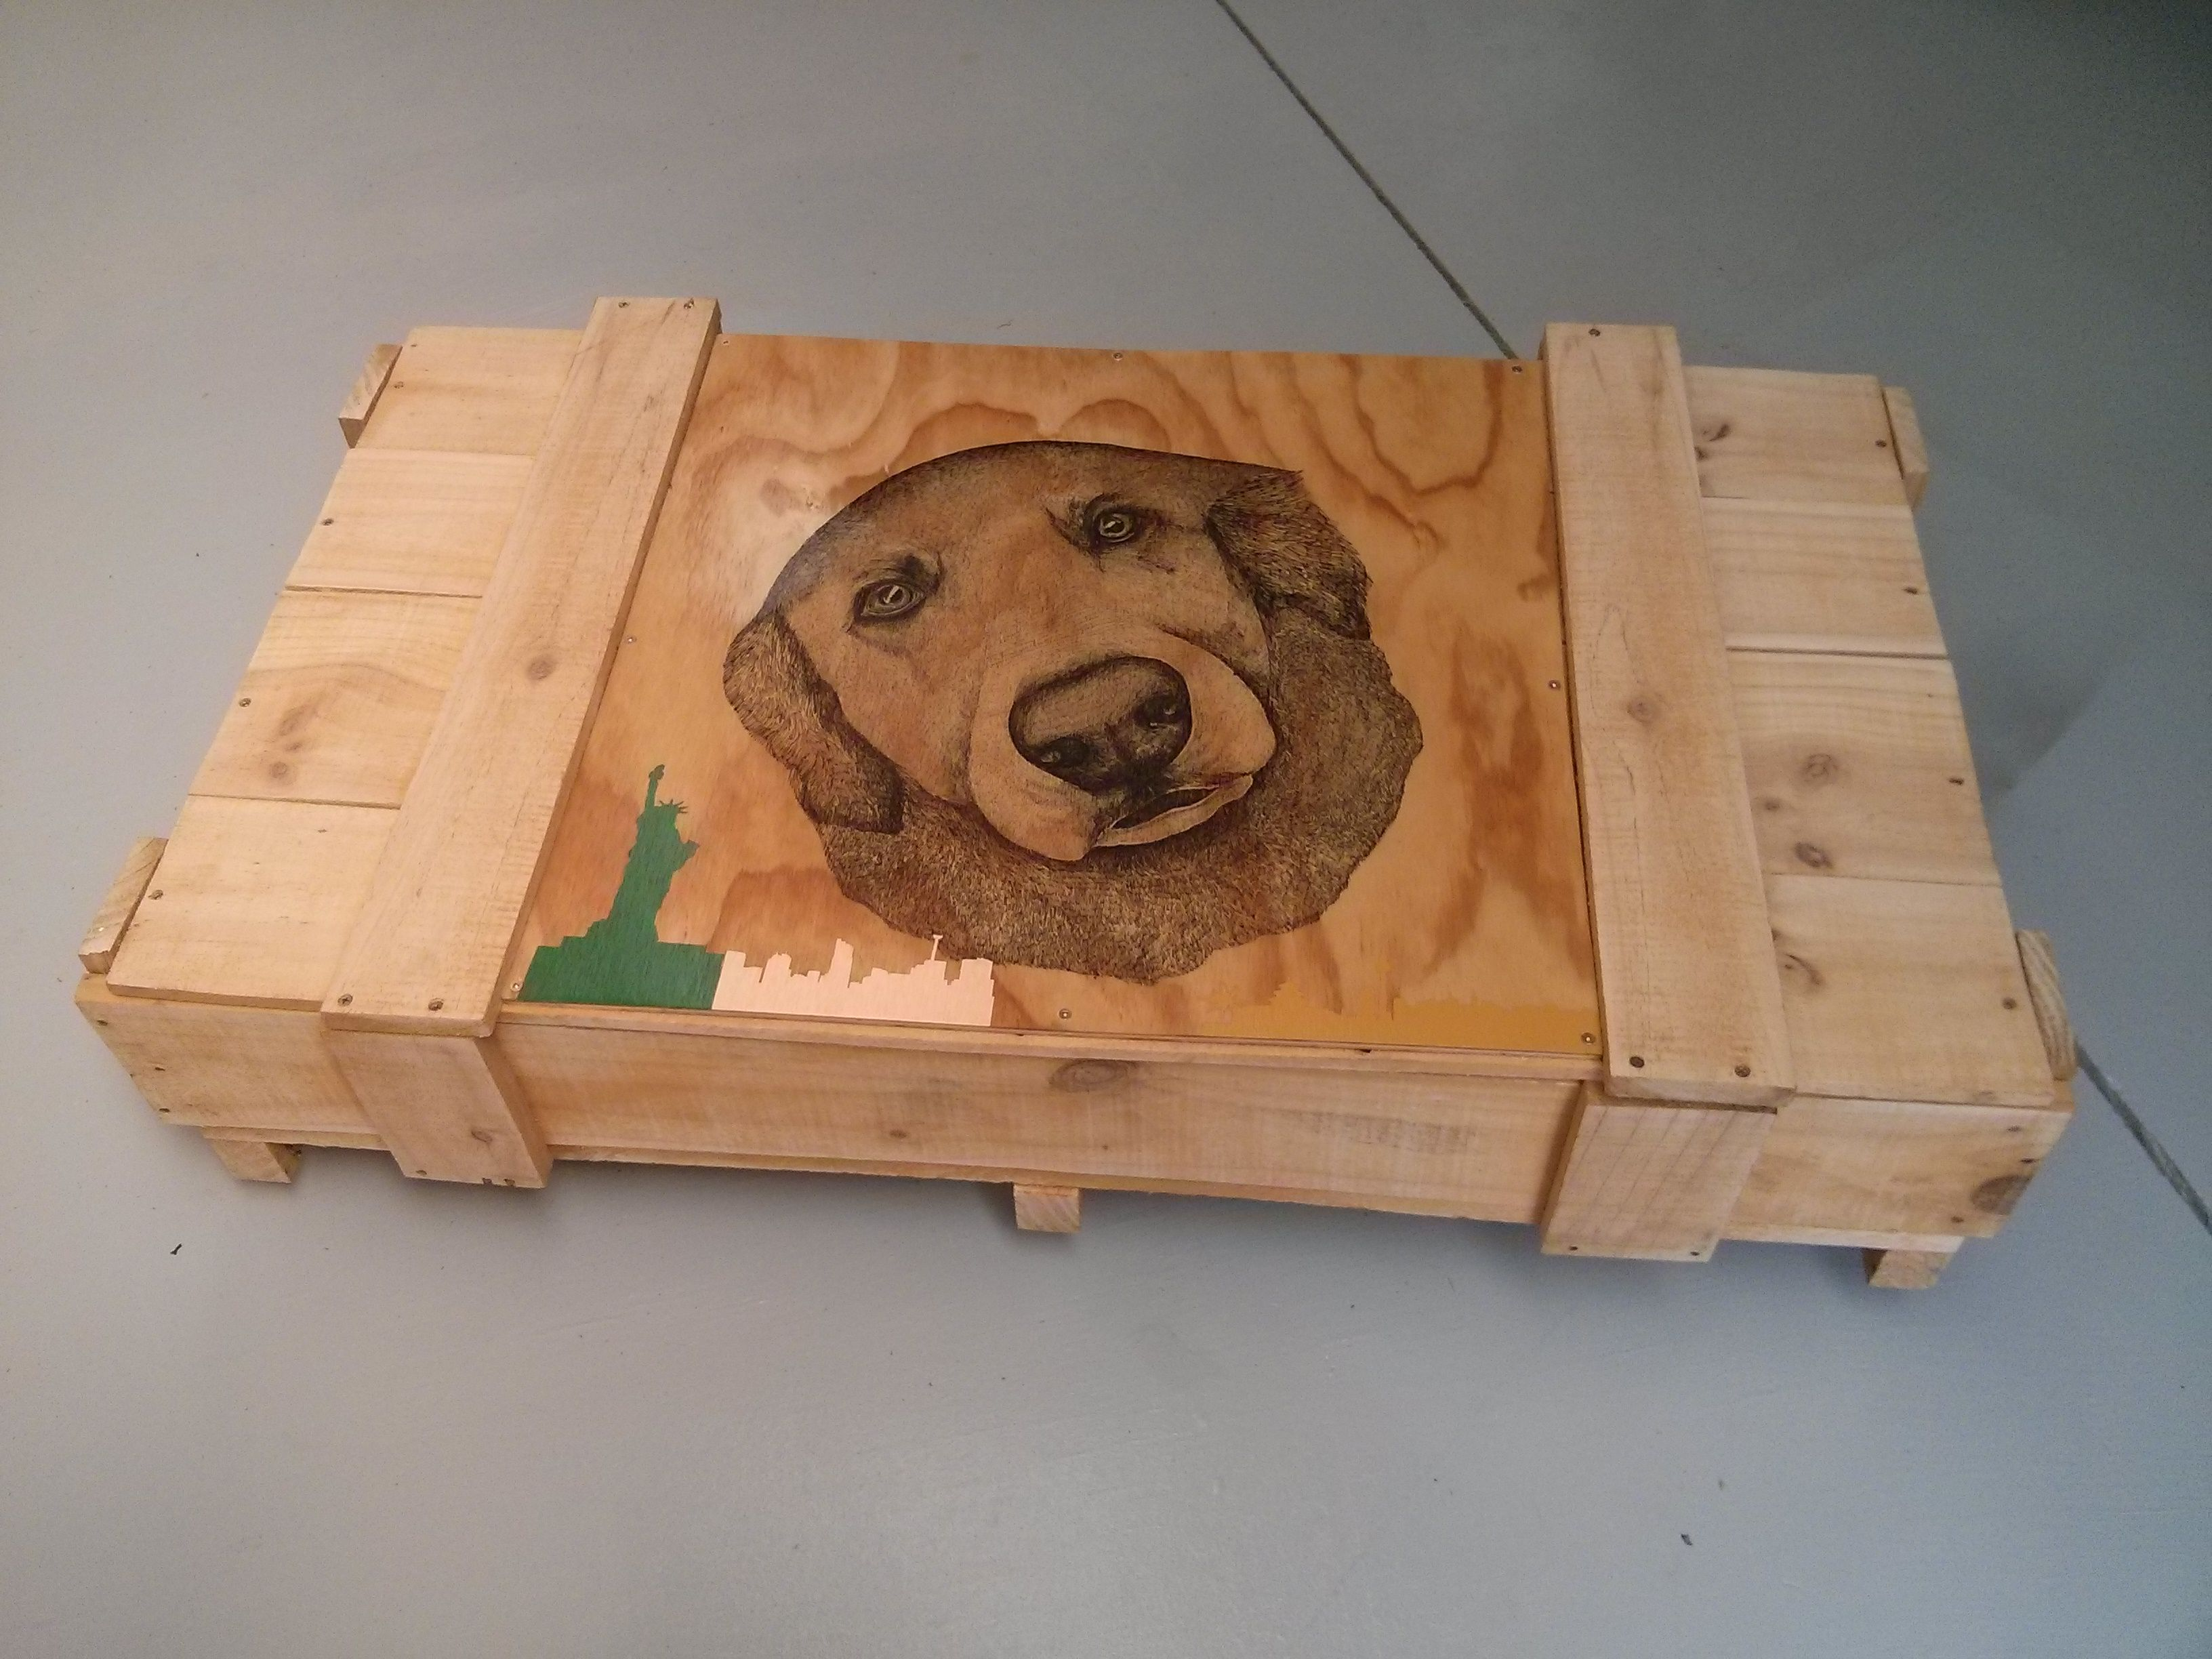 Recycled labrador table on castor wheels. www.featuredcreatures.co.nz